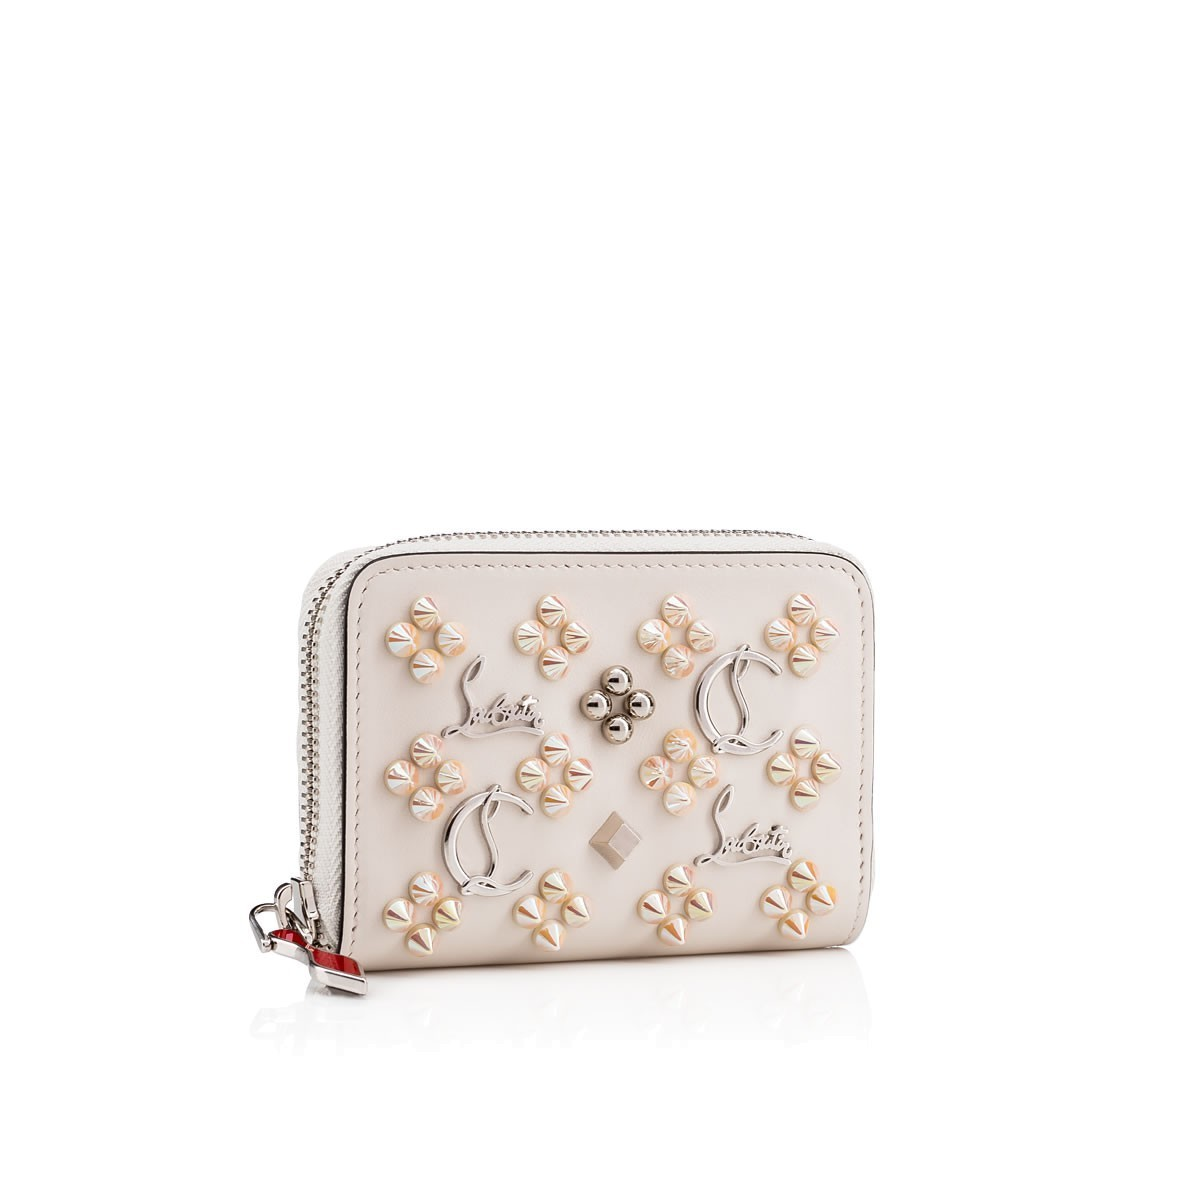 【Christian Louboutin】Panettone Zipped Coin Purse